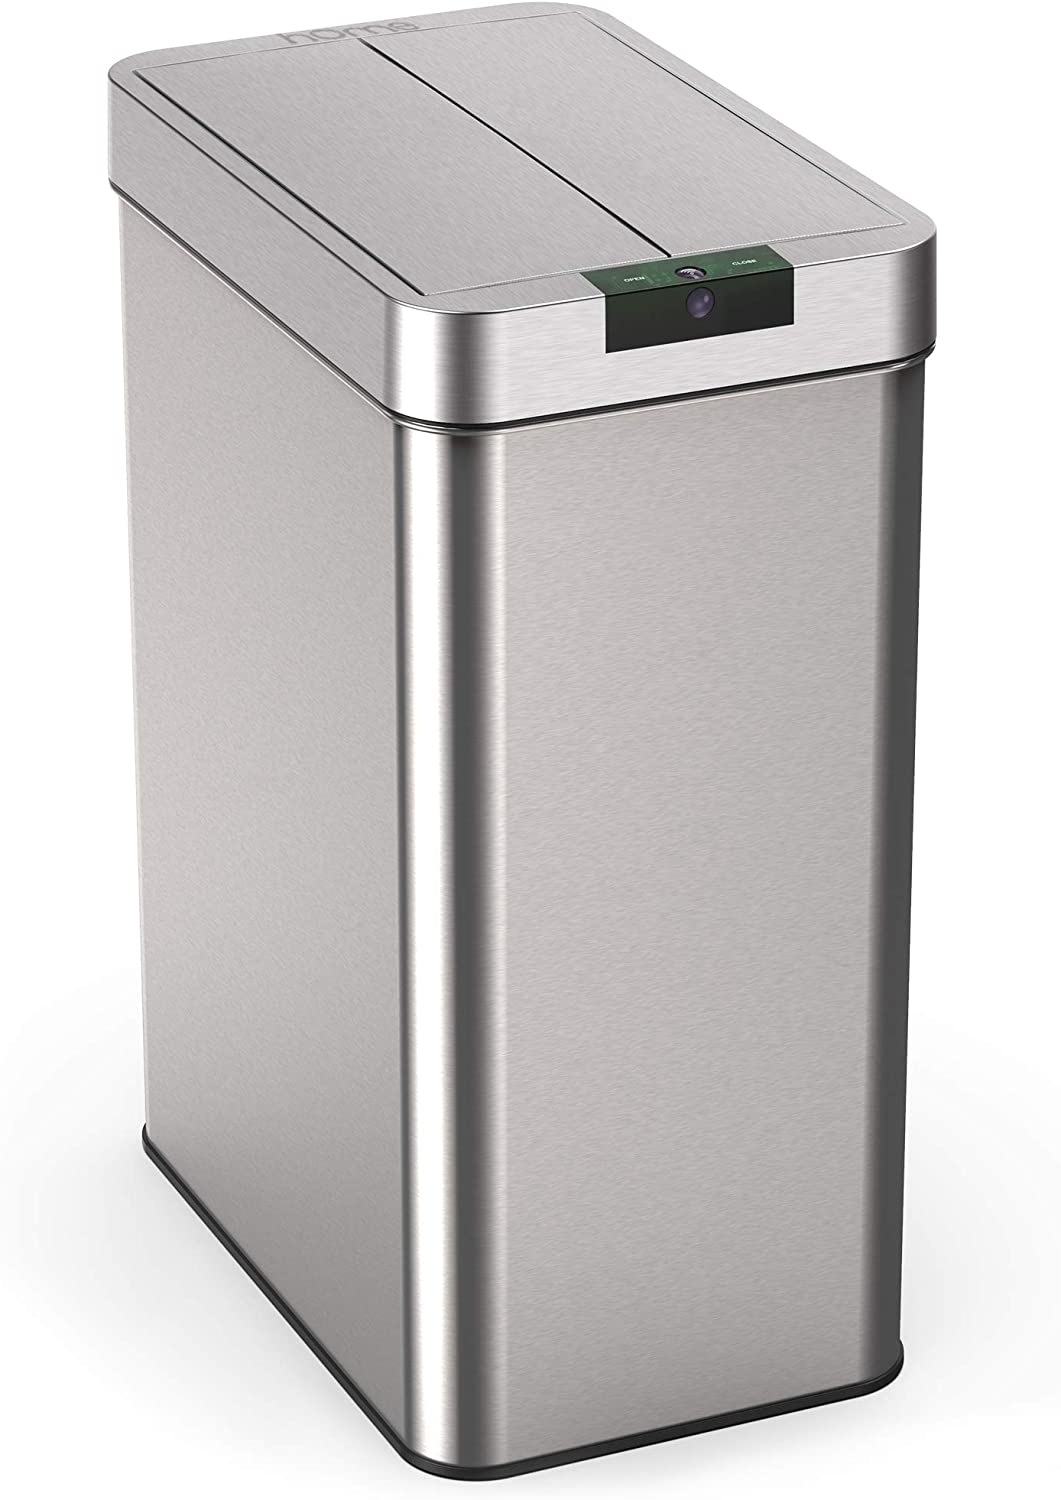 Amazon Com Homelabs 13 Gallon Automatic Trash Can For Kitchen Stainless Steel Garbage Can With No Touch Motion Sensor Butterfly Lid And Infrared Technology Home Kitchen